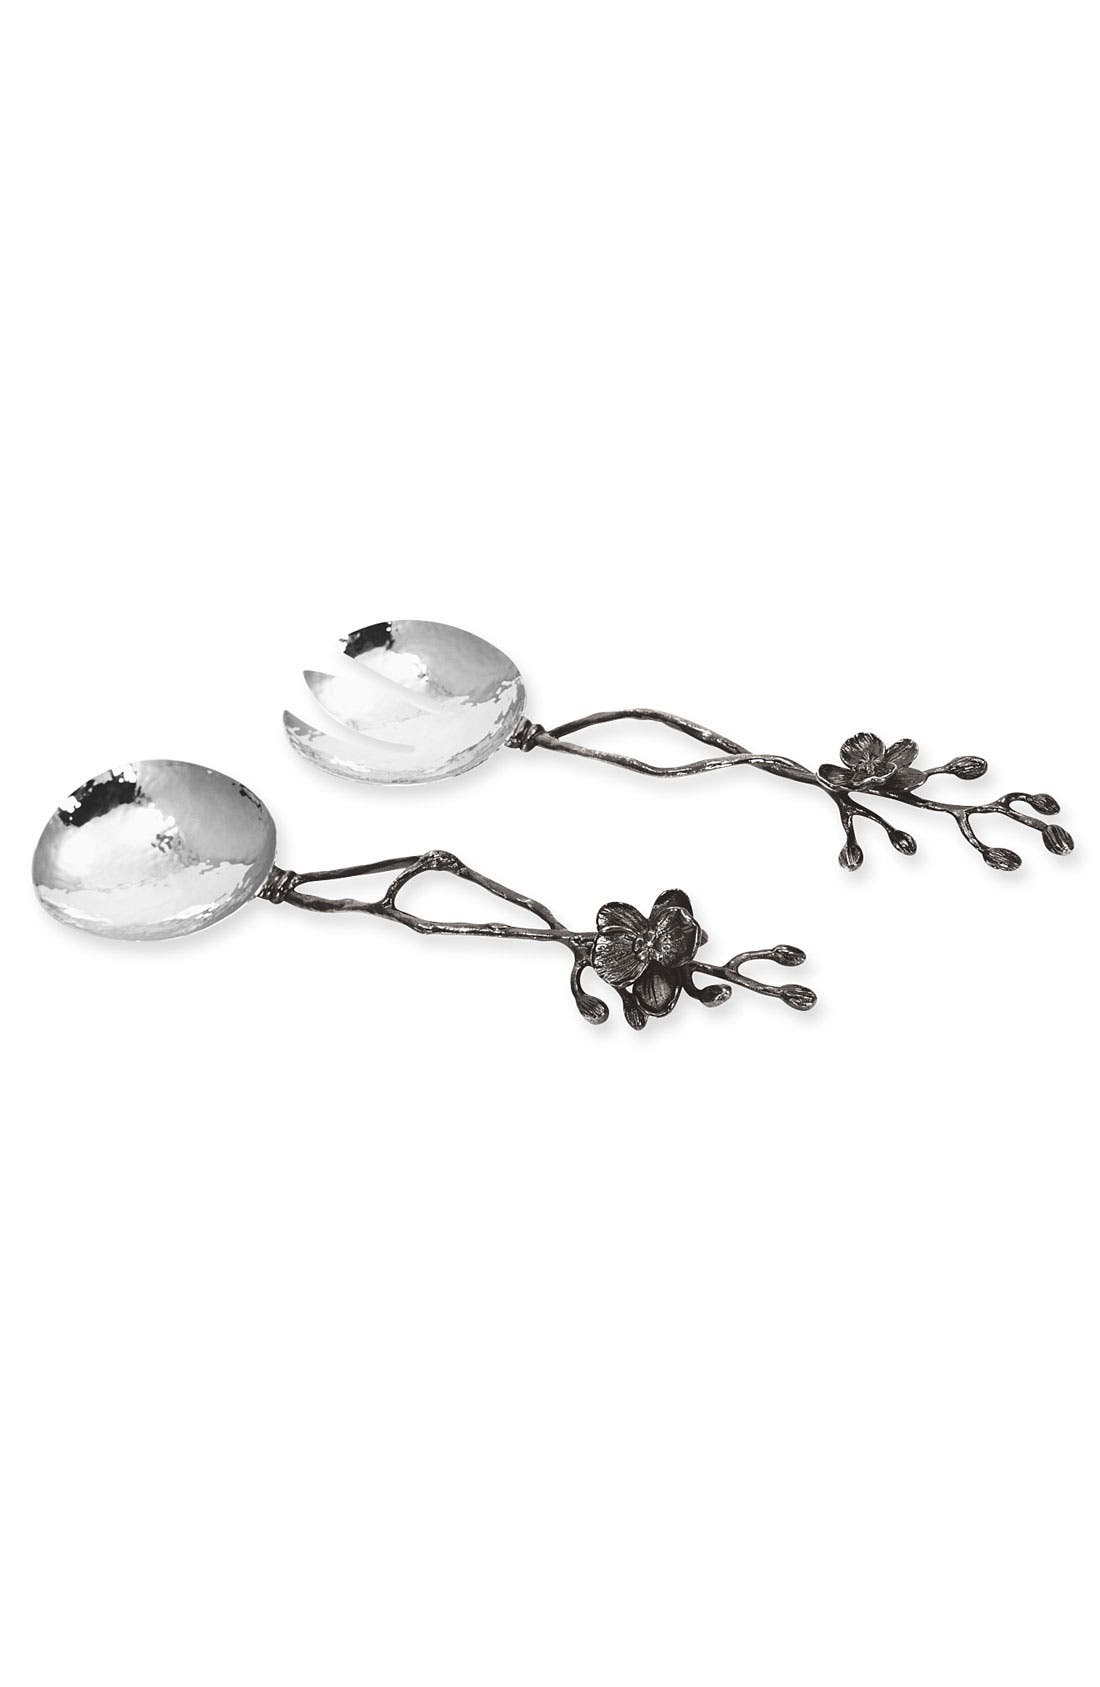 Main Image - Michael Aram 'Black Orchid' 2-Piece Salad Serving Set